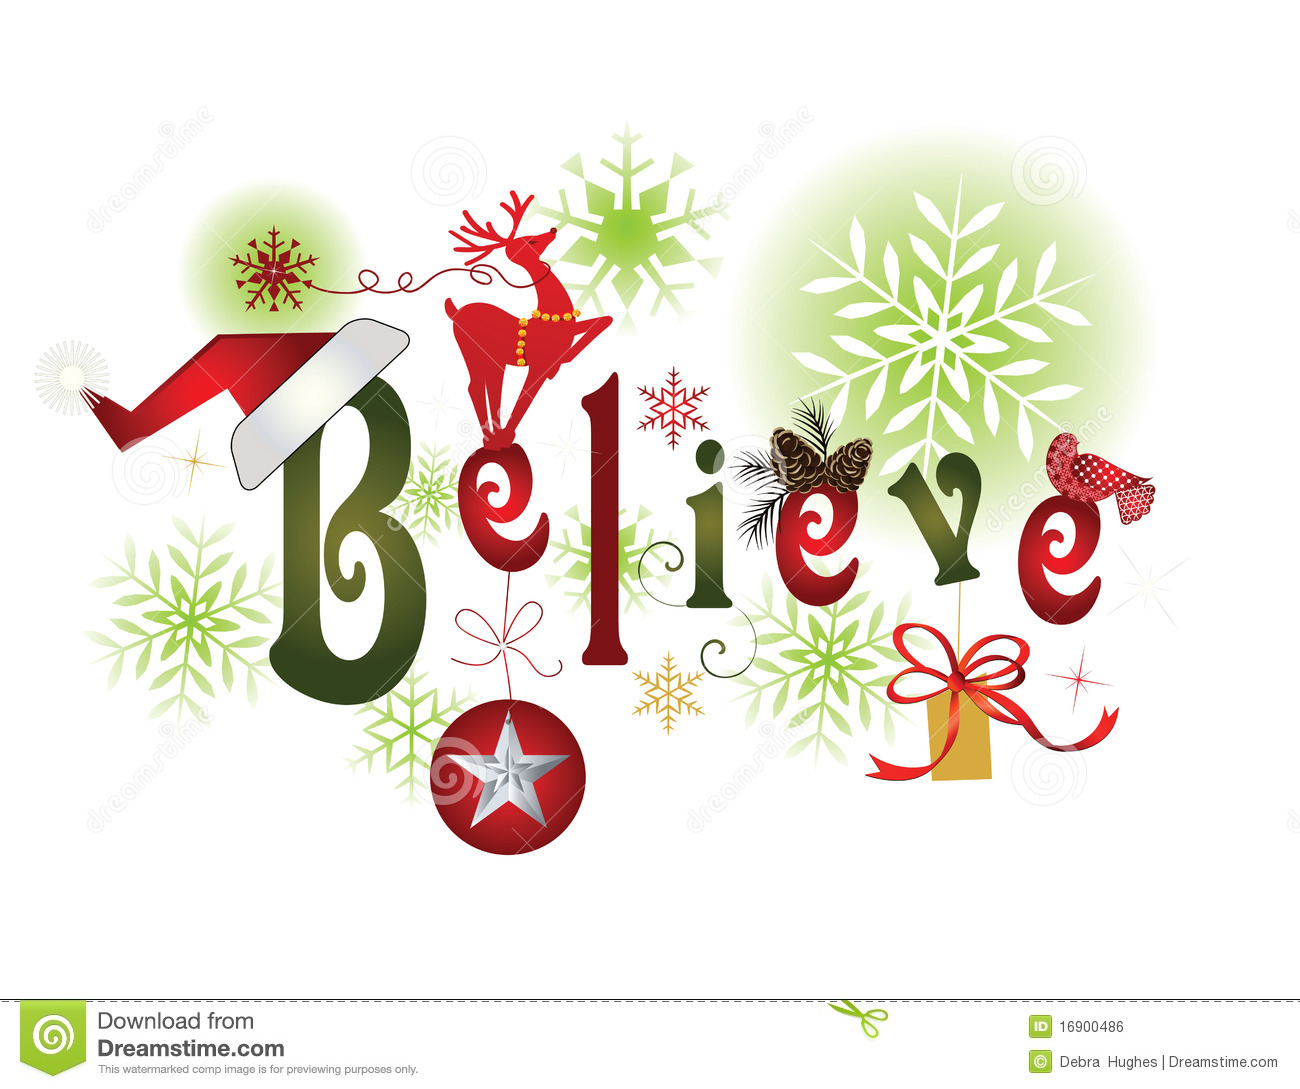 BELIEVE -Christmas message stock vector. Illustration of adorable ...